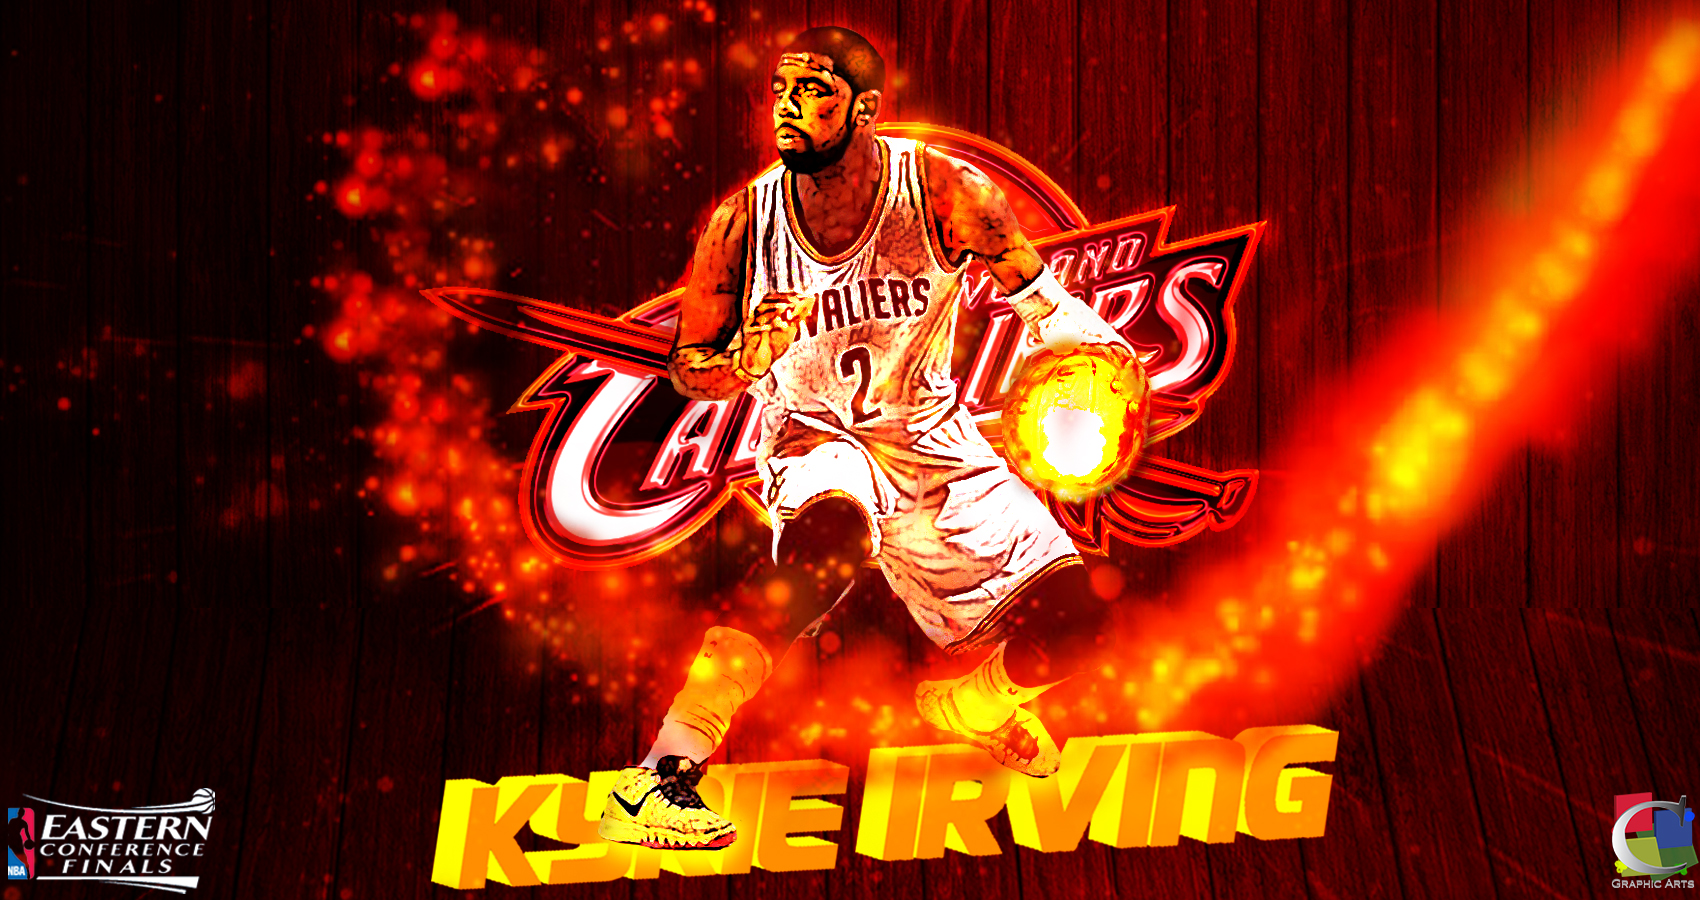 Lebron James Animated Wallpaper Kyrie Irving Wallpaper Pixelstalk Net